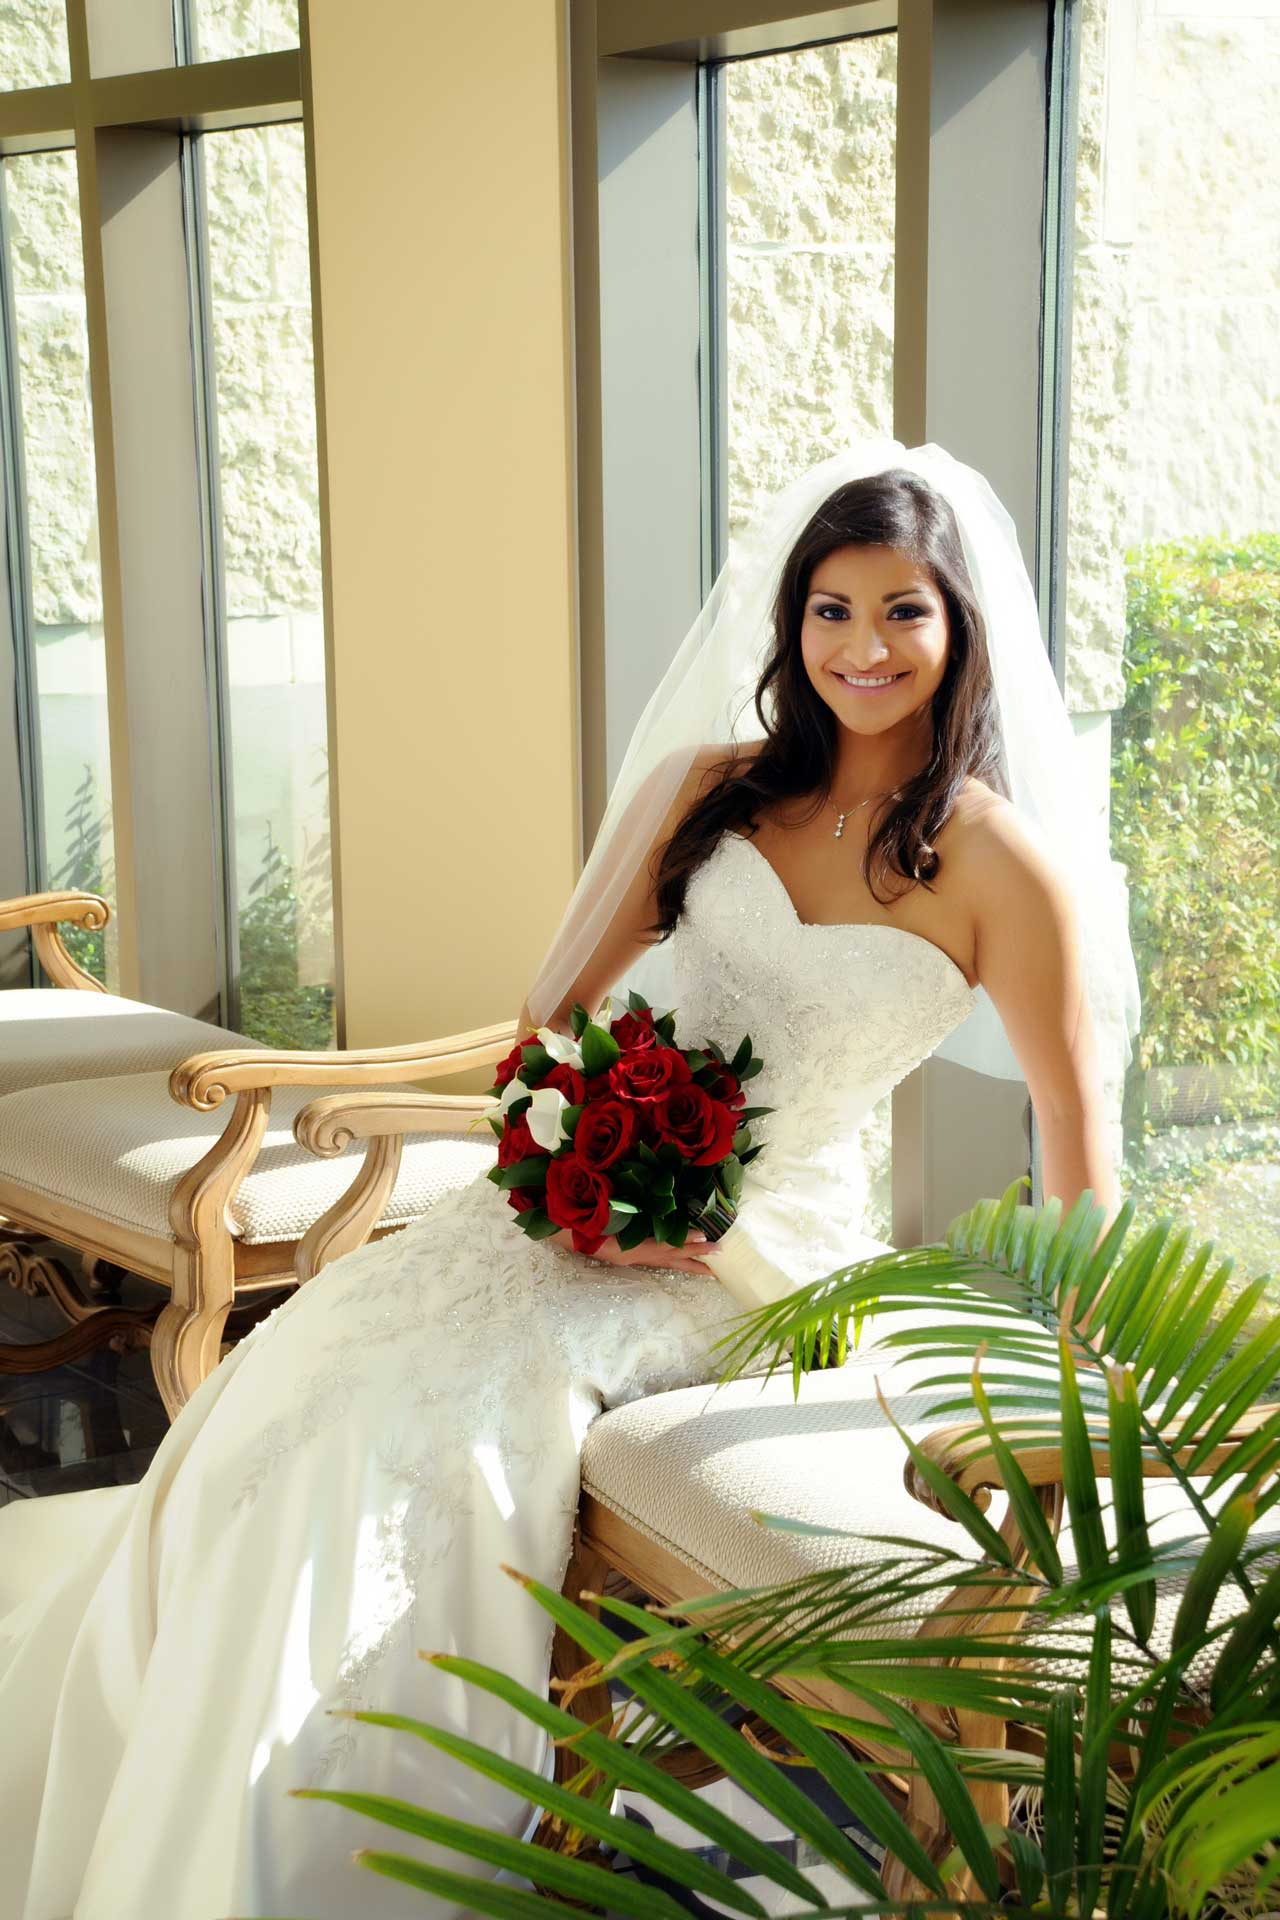 Wedding Event Venue San Antonio Just The Bride